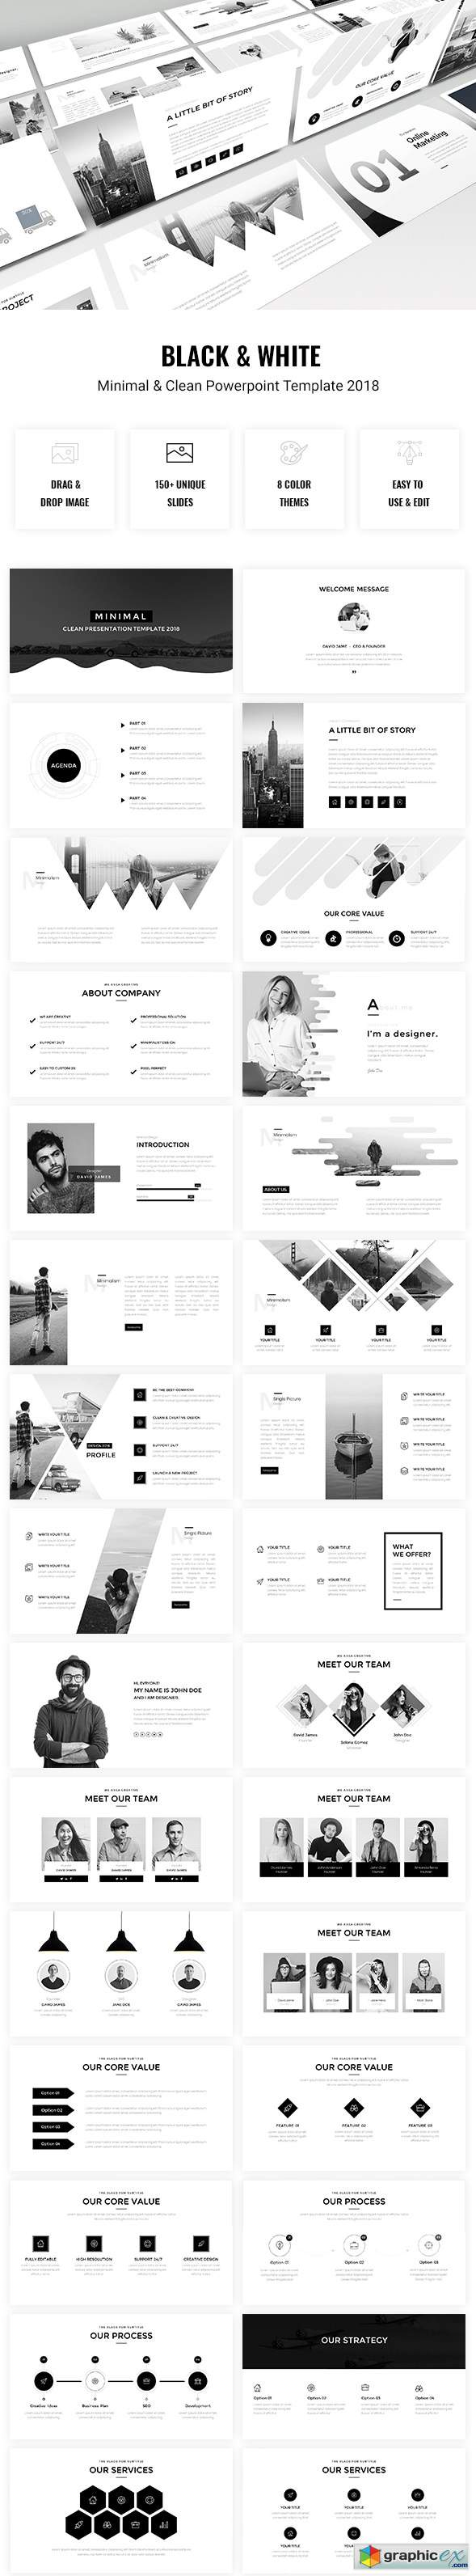 Minimal - Black & White Powerpoint Template 2018